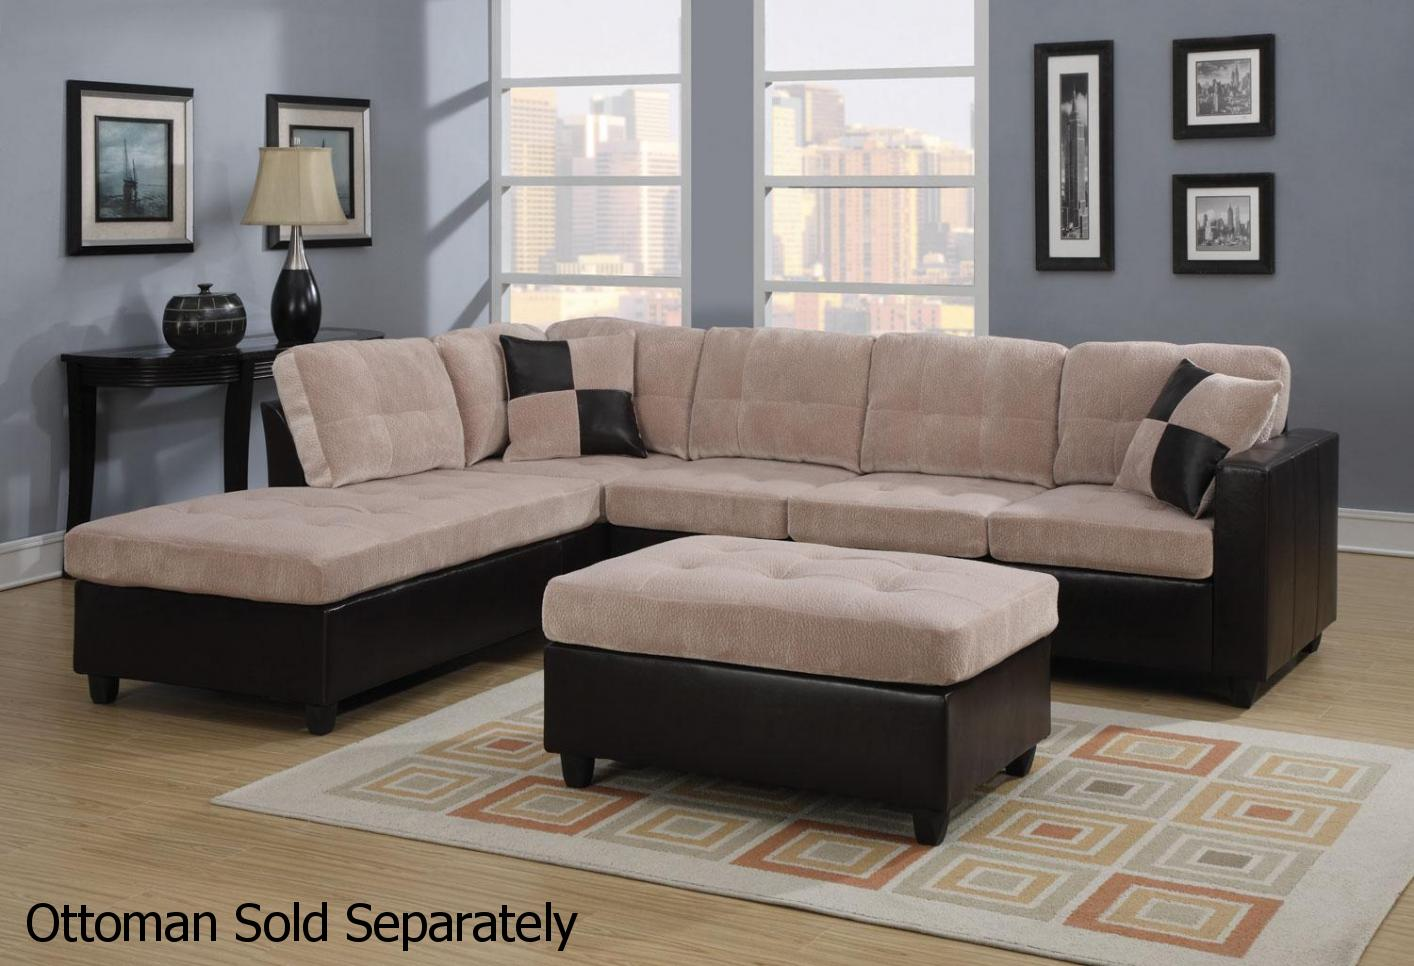 ottoman living collection beige to sofa of abbyson sectional abson pertaining charlotte and furniture